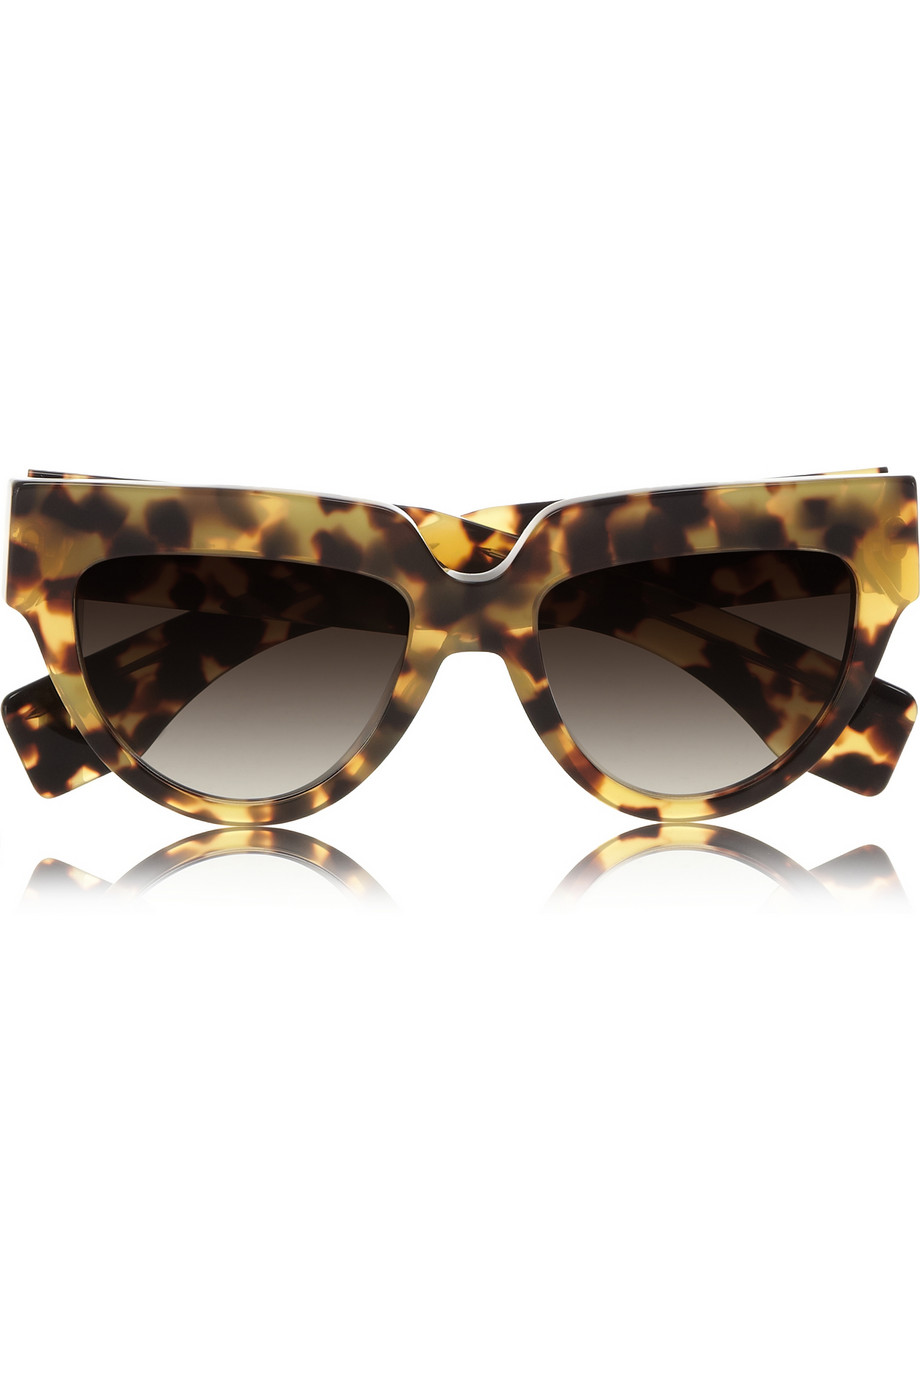 Prada Cat Eye Tortoiseshell Acetate Sunglasses in Animal    Prada Cat Eye Sunglasses 2013